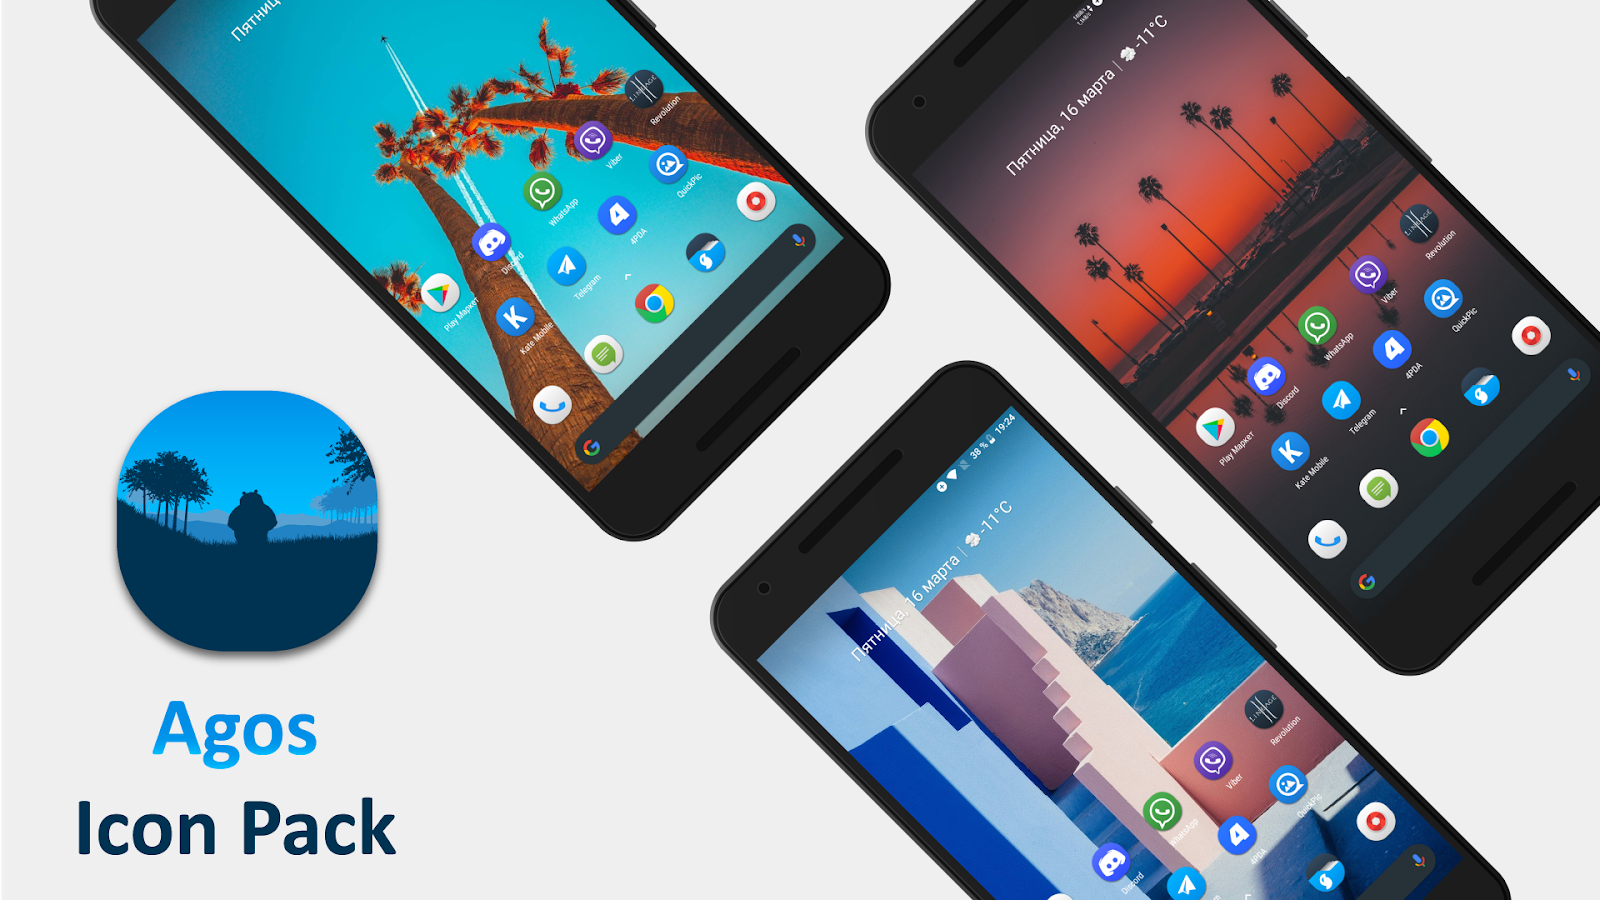 Agos - Icon Pack 이미지[4]